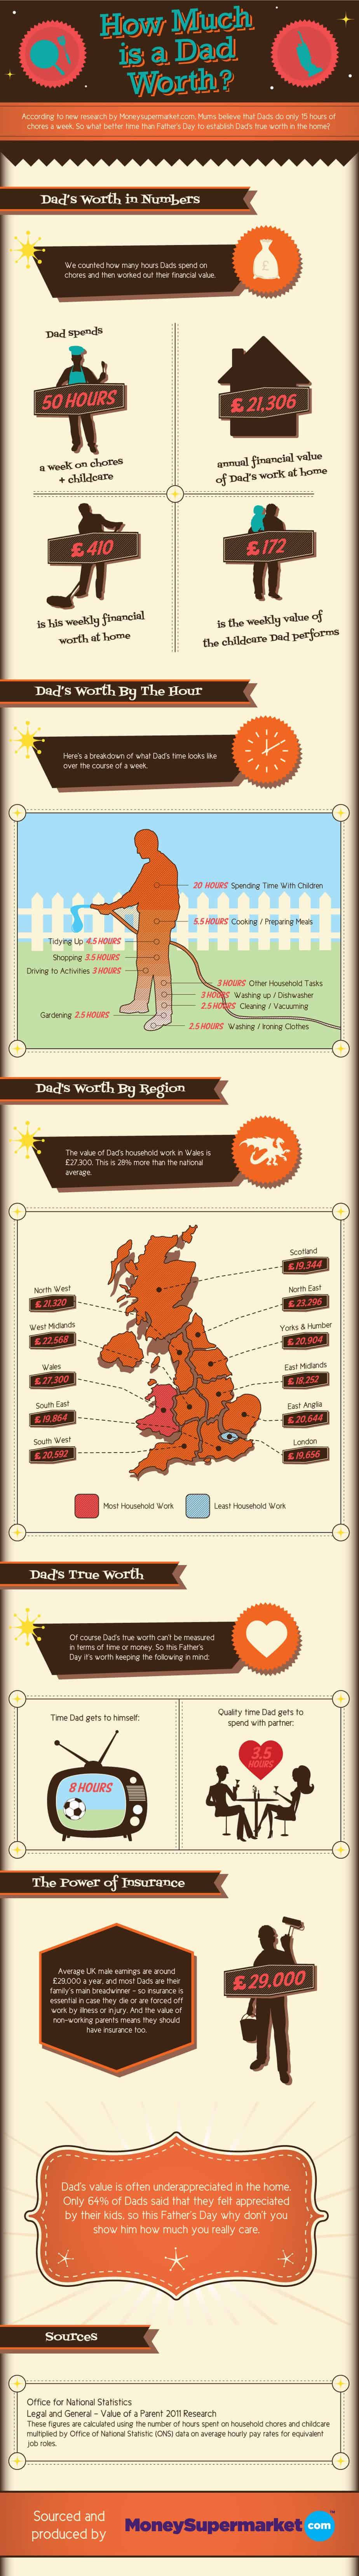 infographic fathers day